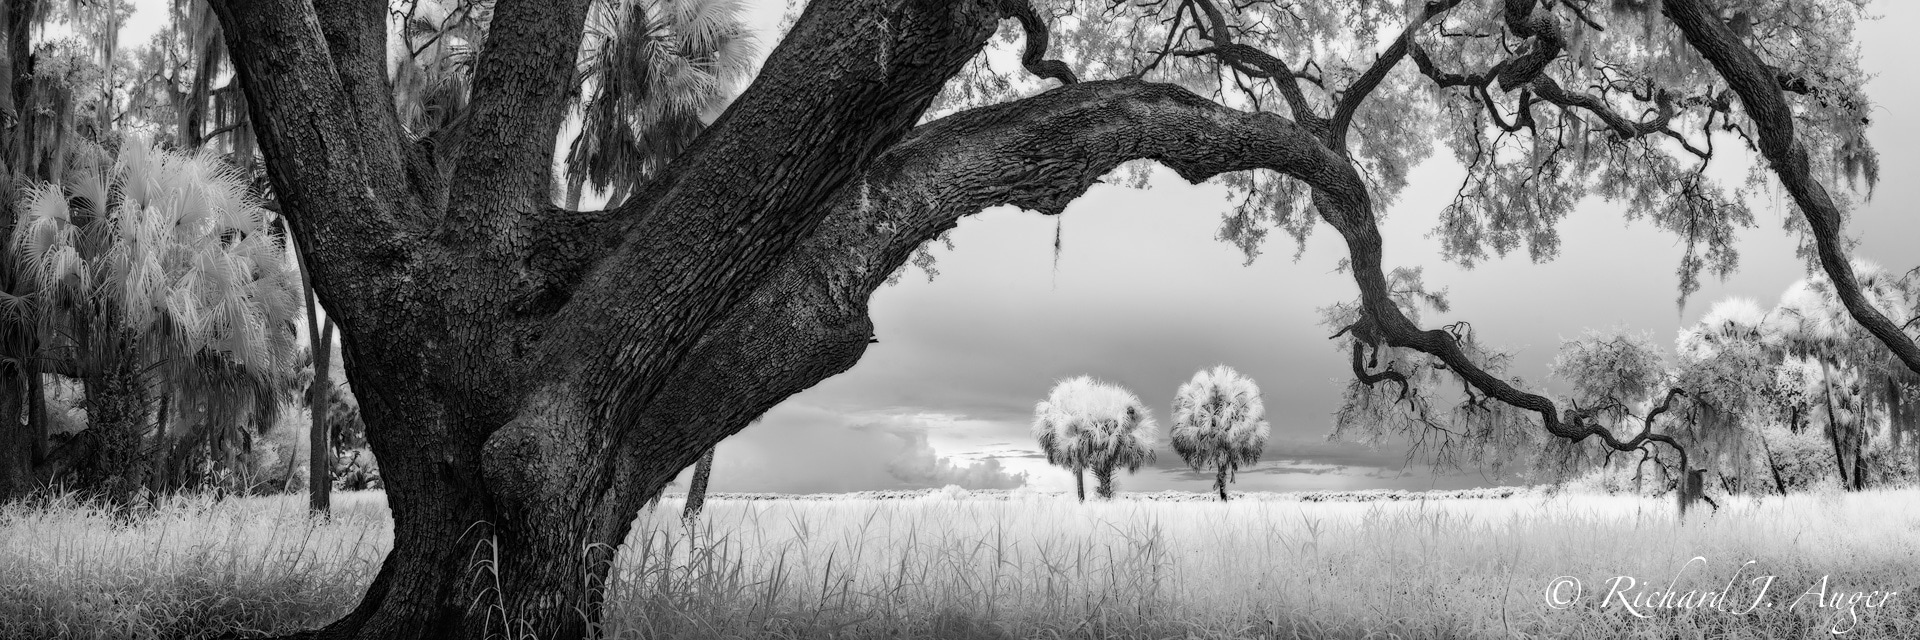 Myakka River State Park, Florida, Oak, Palm Trees, Swamp, Haunted, Monochrome, Photograph, Nature, black and white, panorama